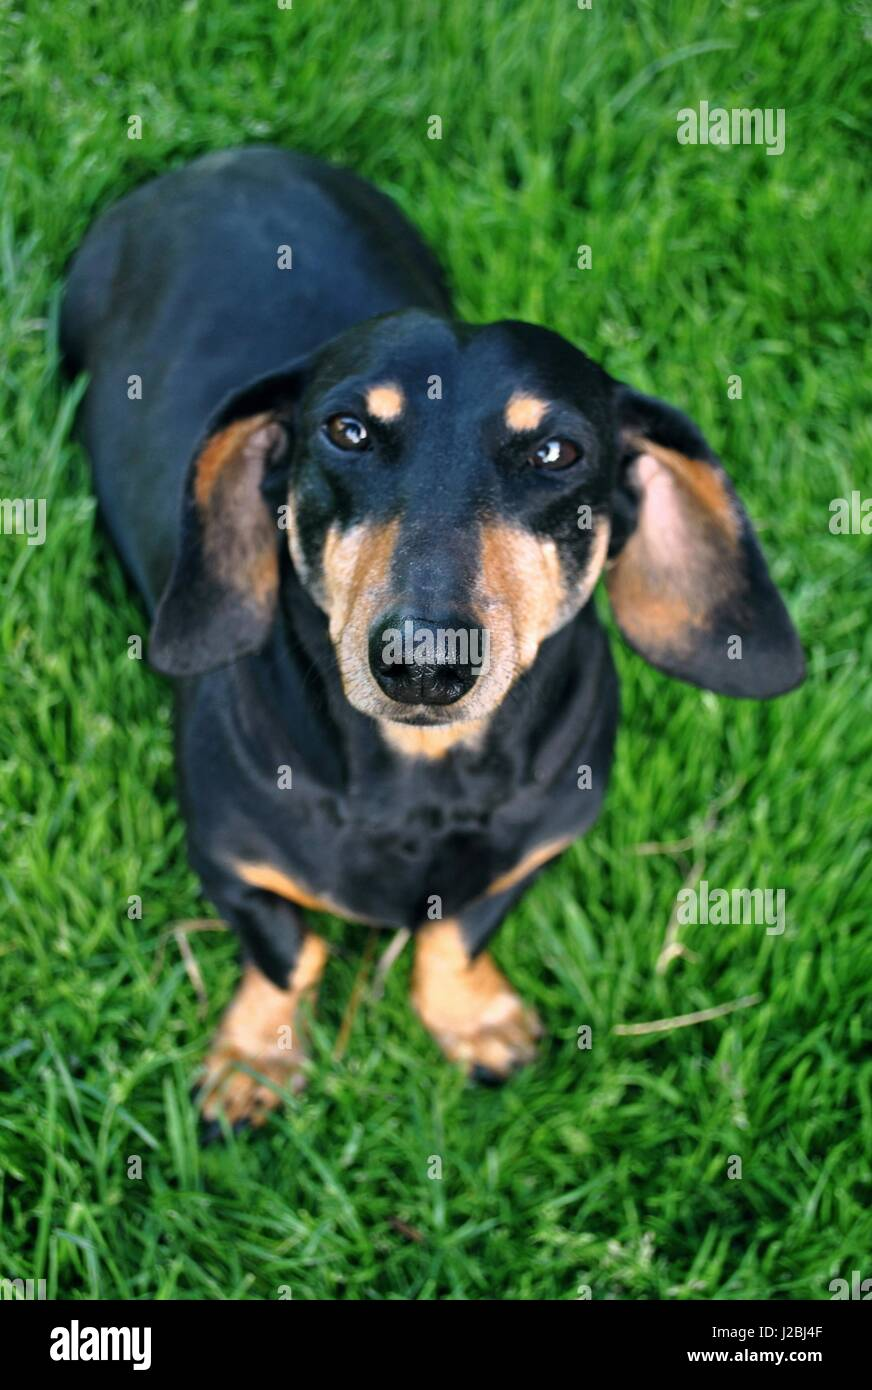 Brown And Black Living Room Decorating Ideas: Black And Brown Dachshund Stock Photos & Black And Brown